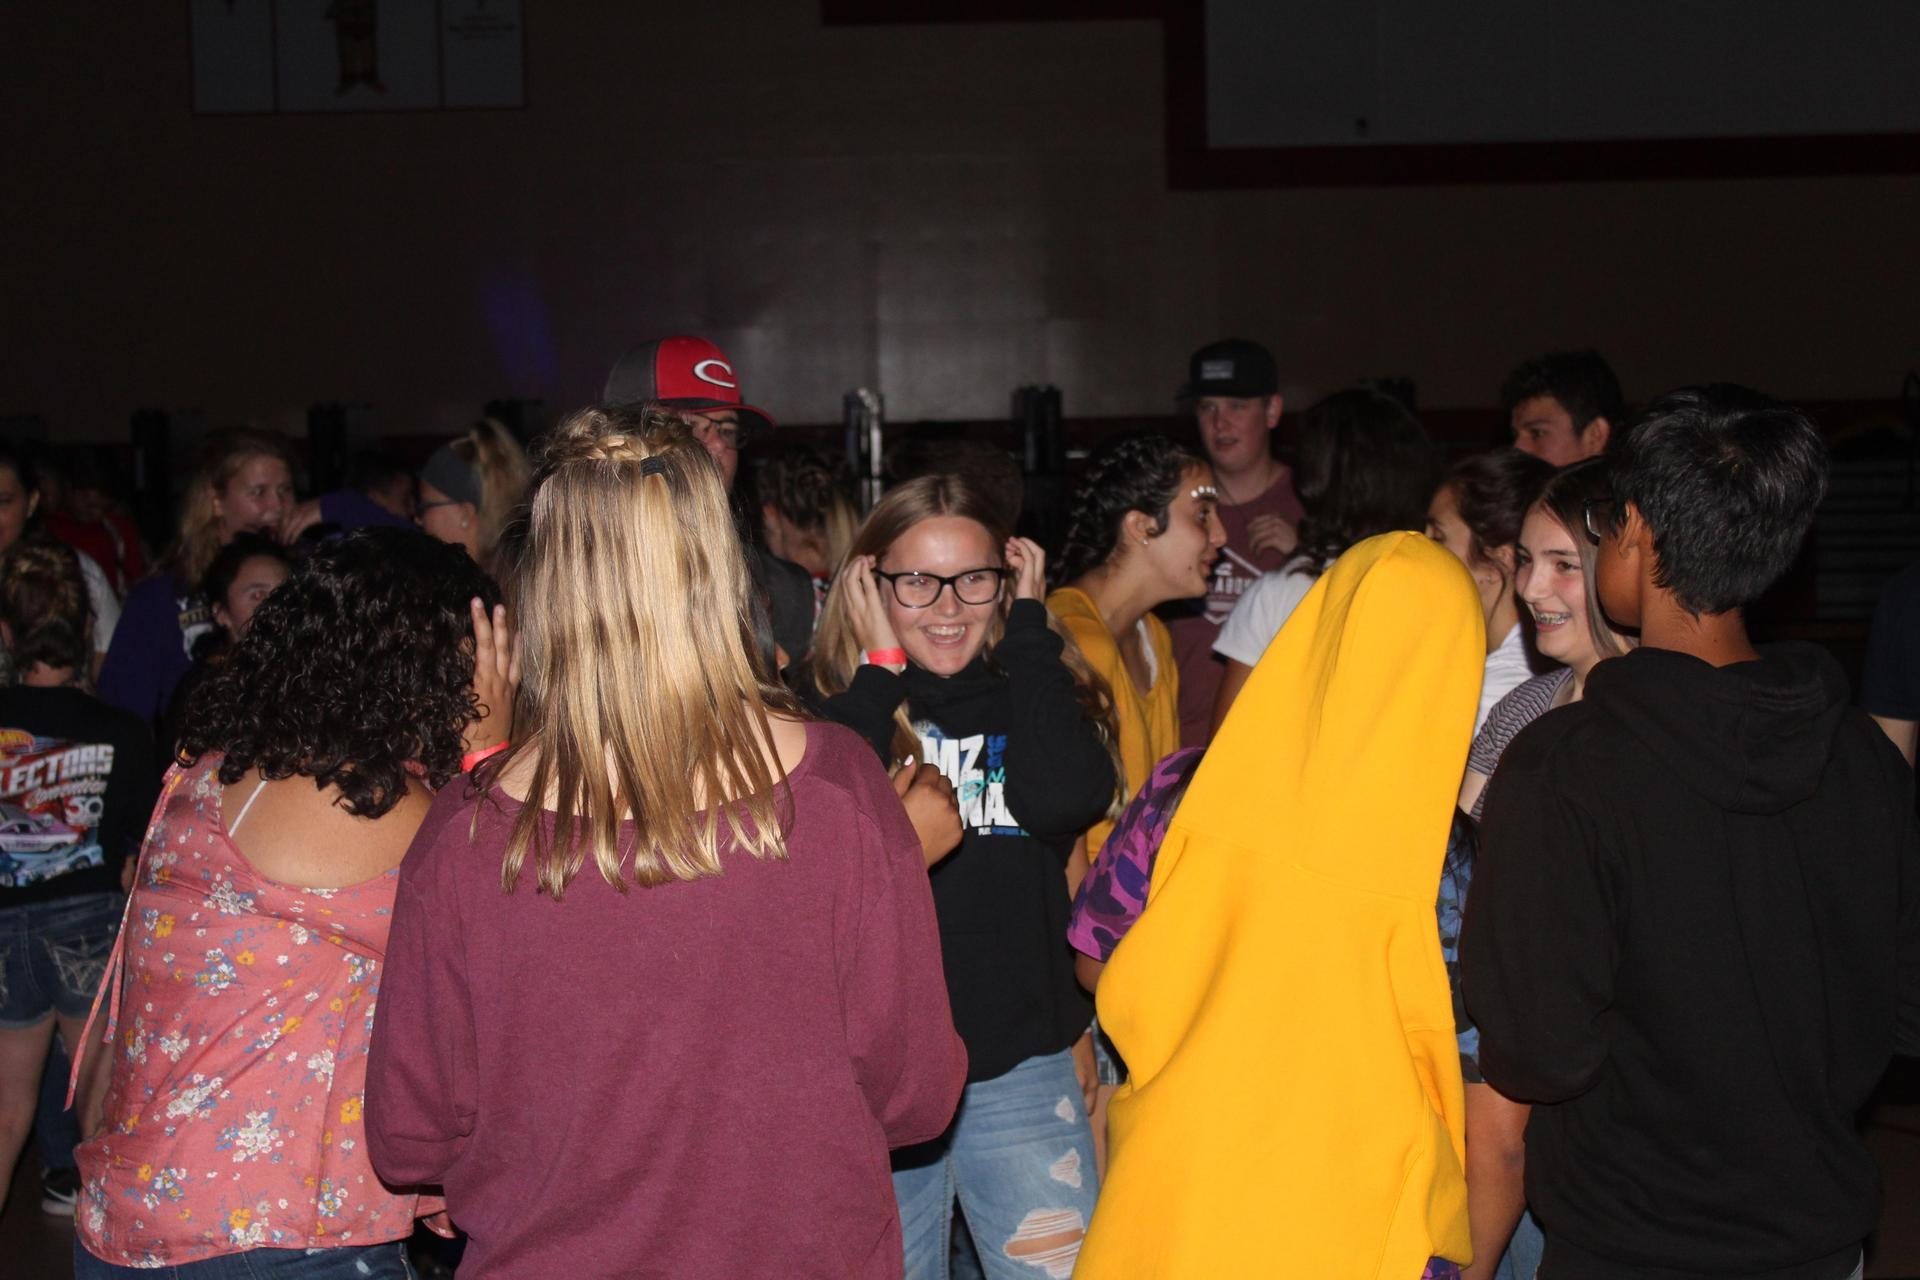 Students having fun at the dance after the Liberty Football game